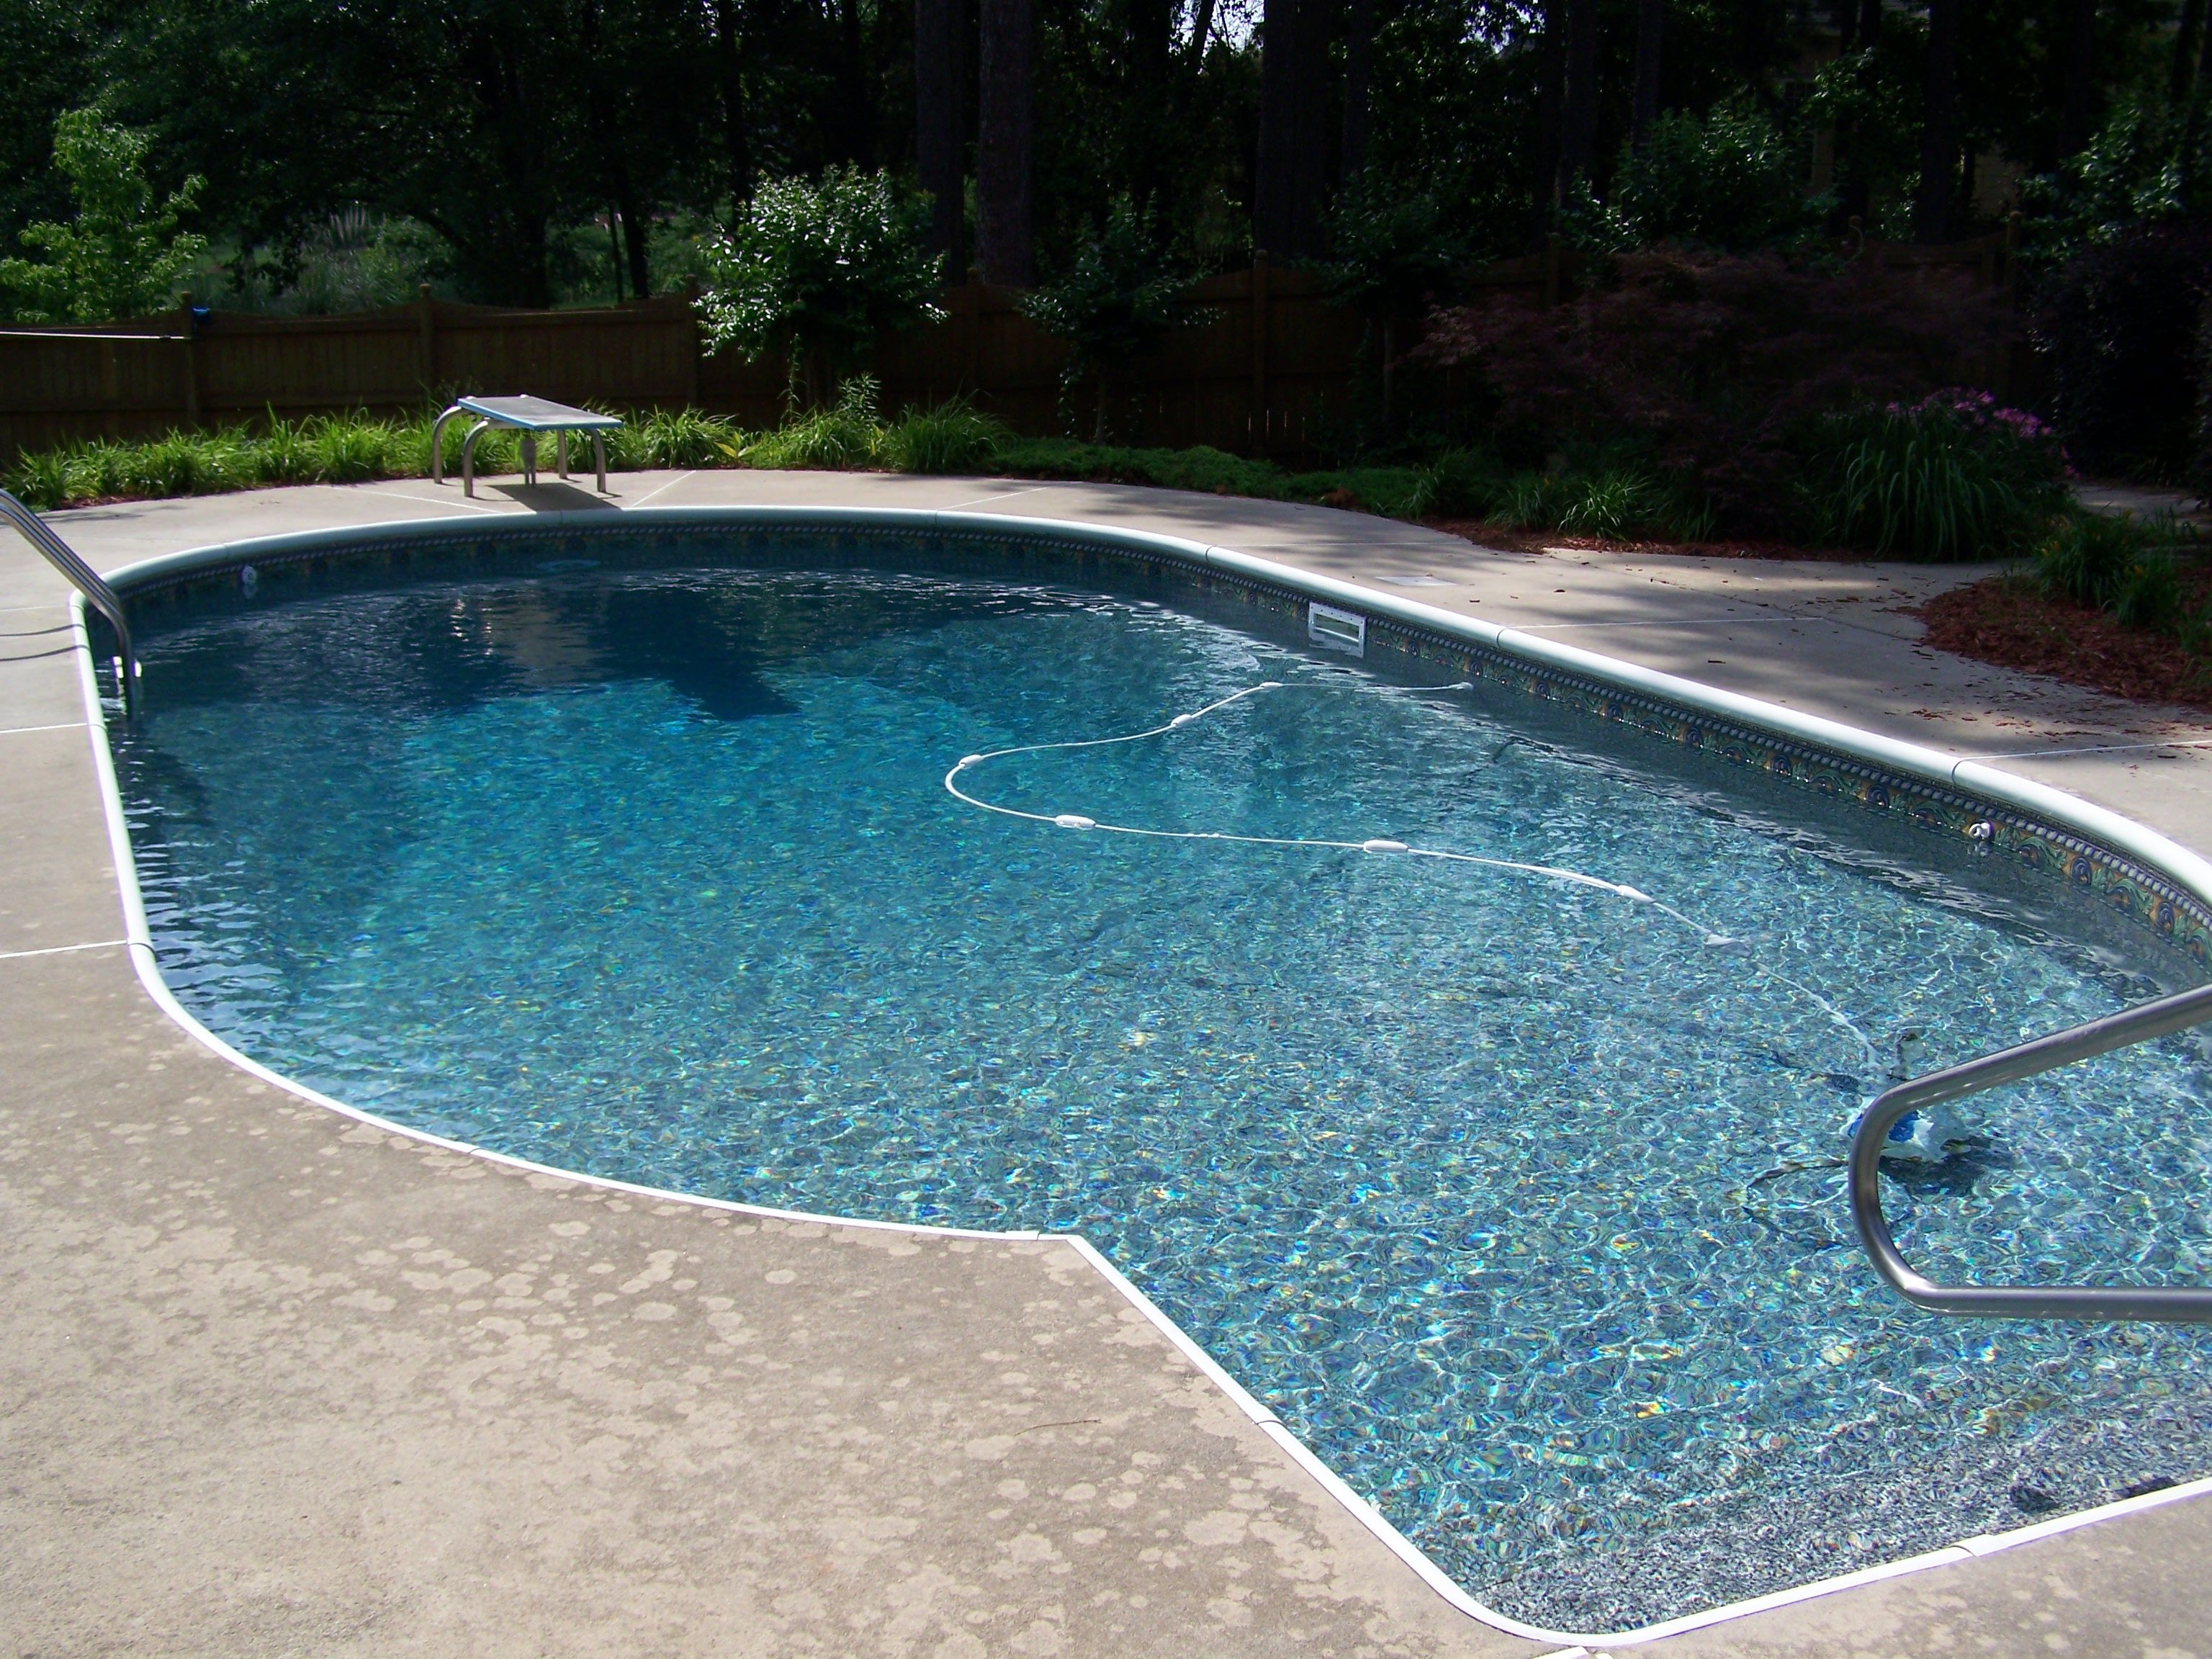 Images of pool liners luxury pool liners things i want for Pool liners